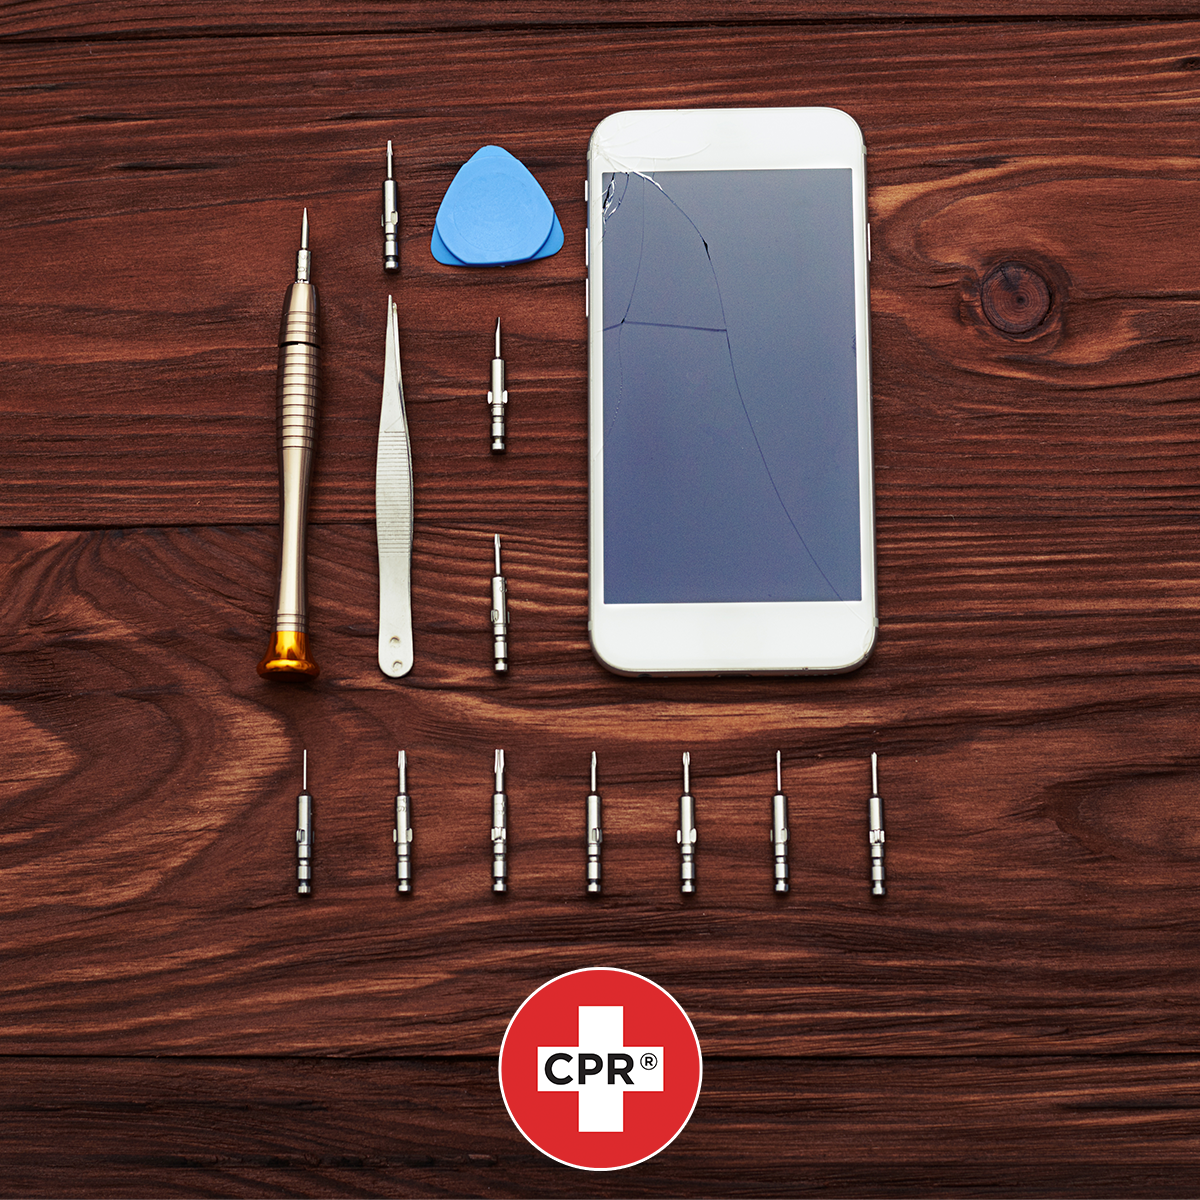 Cell Phone Repair Albuquerque >> Cpr Cell Phone Repair Albuquerque Uptown Mall Is Your